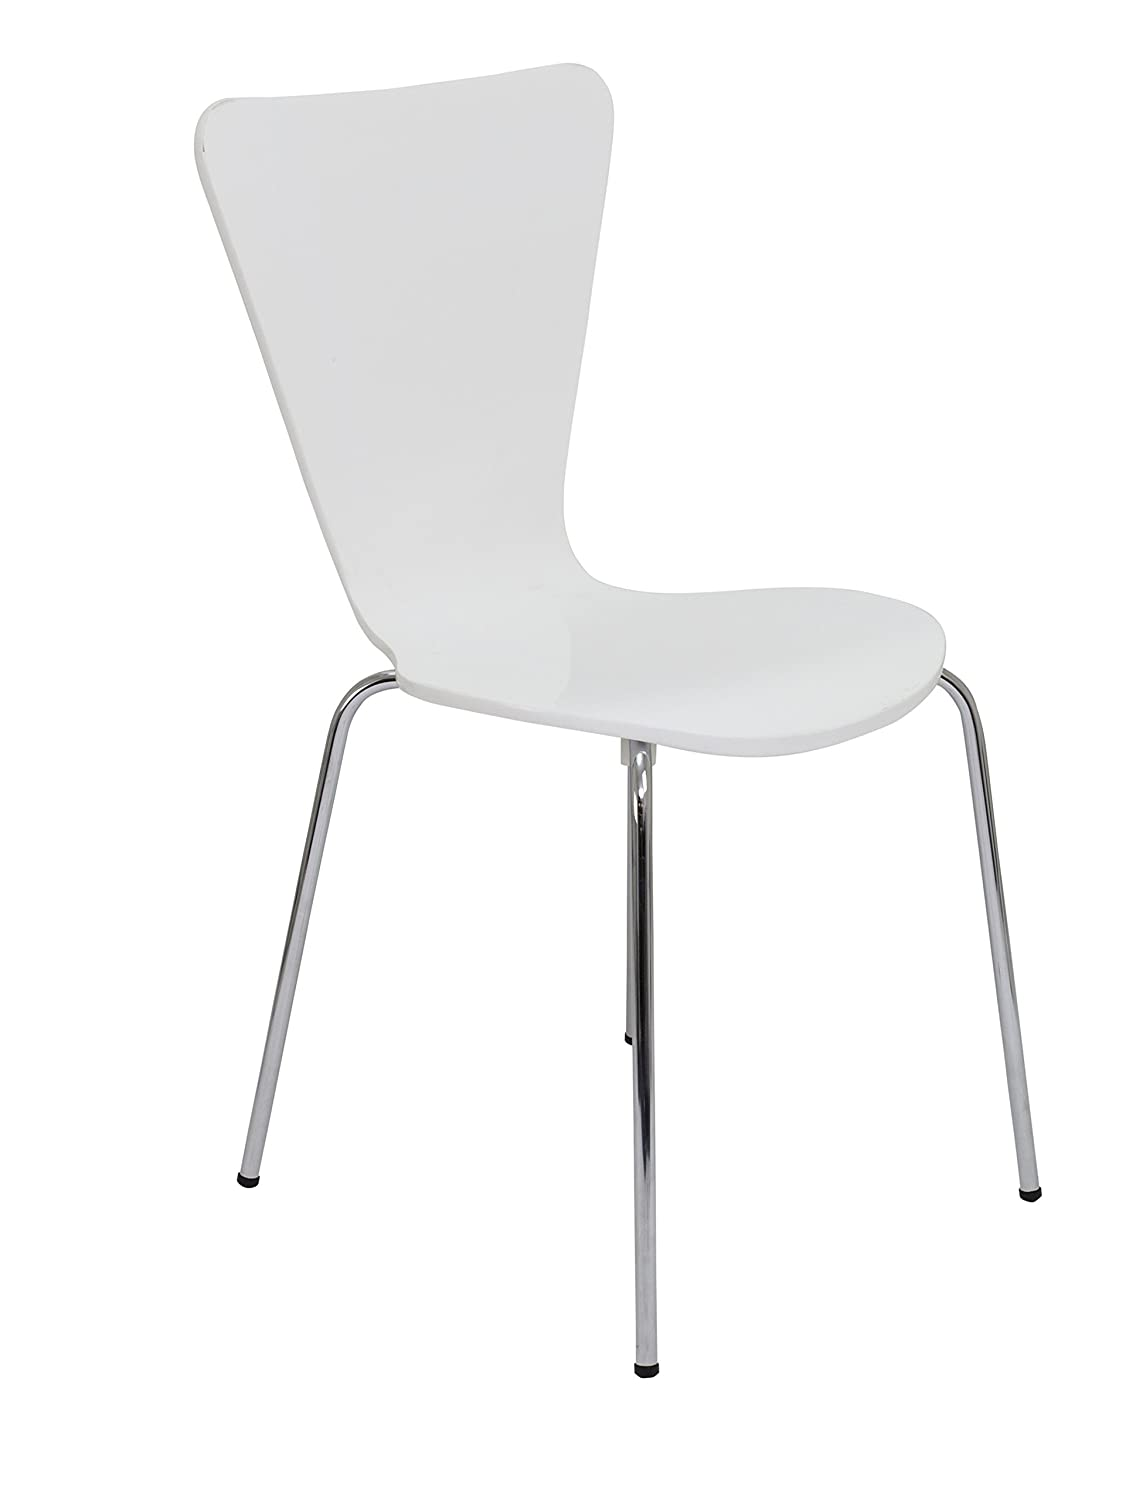 Office Hippo Heavy Duty Cafe Bistro Stacking Chair, Wood, Suitable For Commercial Use - White TC Group CH0672WH